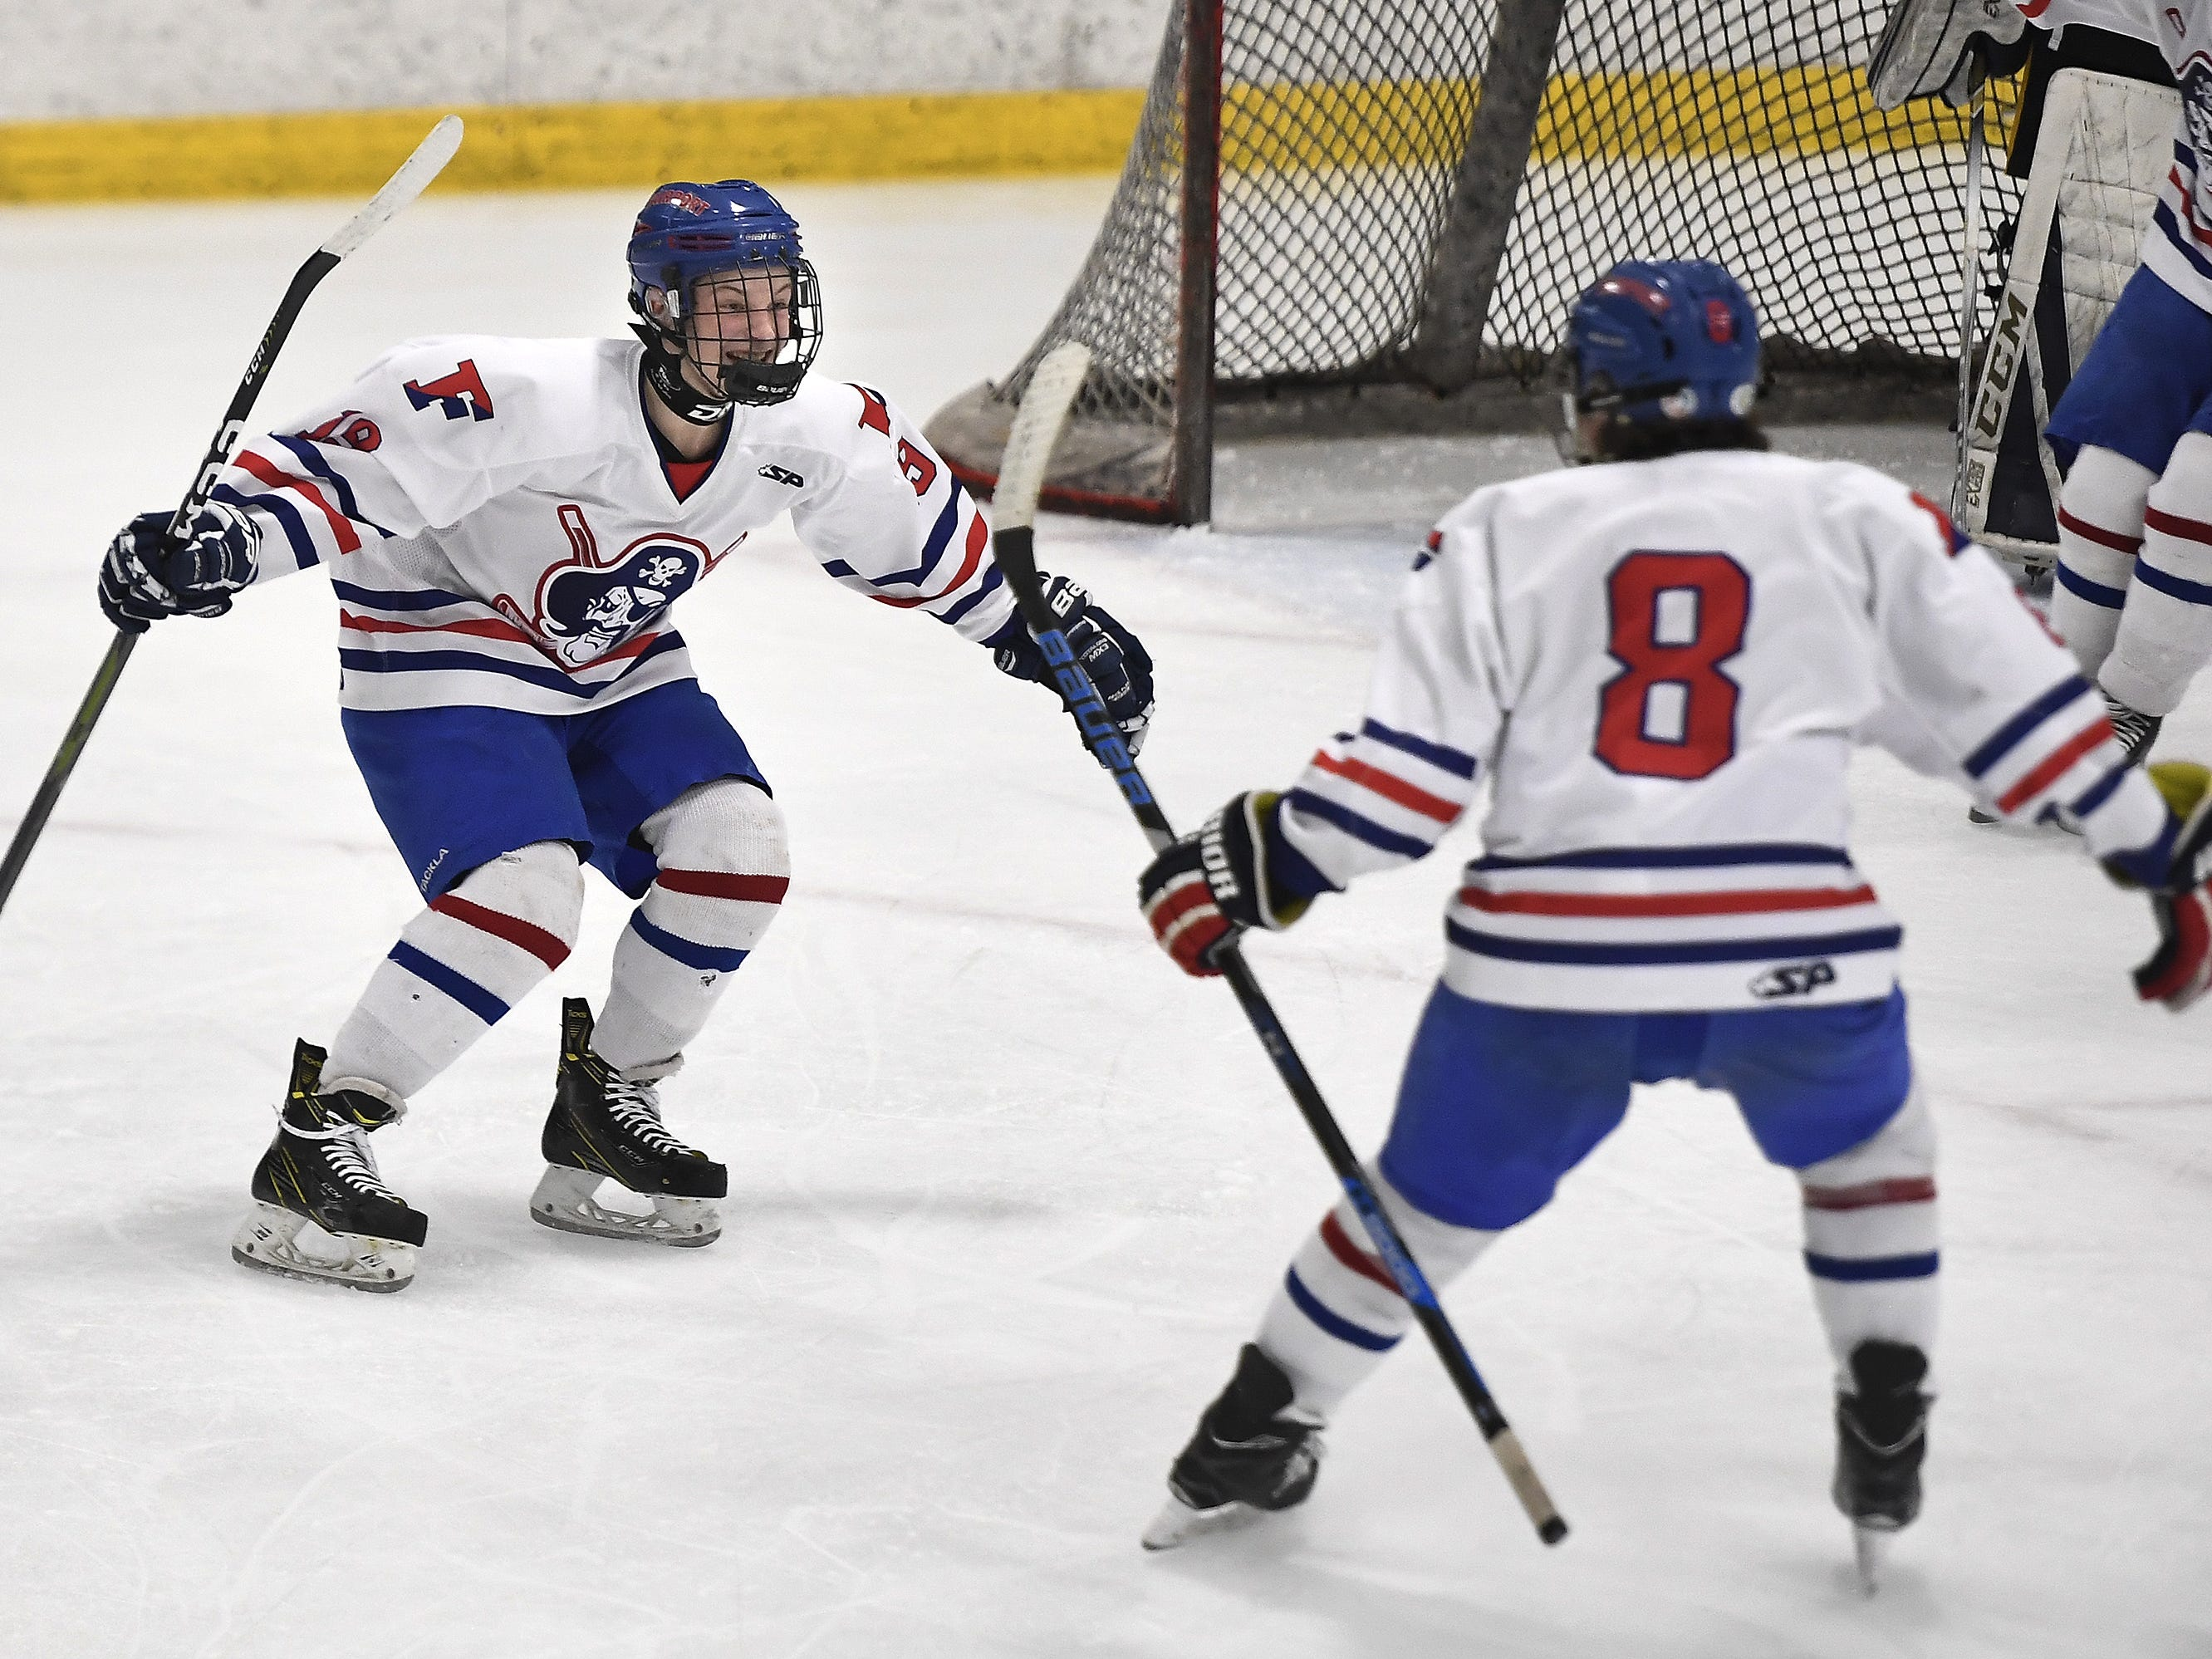 Fairport's Cory Foster, left, celebrates scoring the Raiders' second goal with teammate Matt Krug during the second period of a regular season game played at the Rochester Ice Center, Wednesday, Feb. 6, 2019. McQuaid beat Fairport 5-4 in overtime.